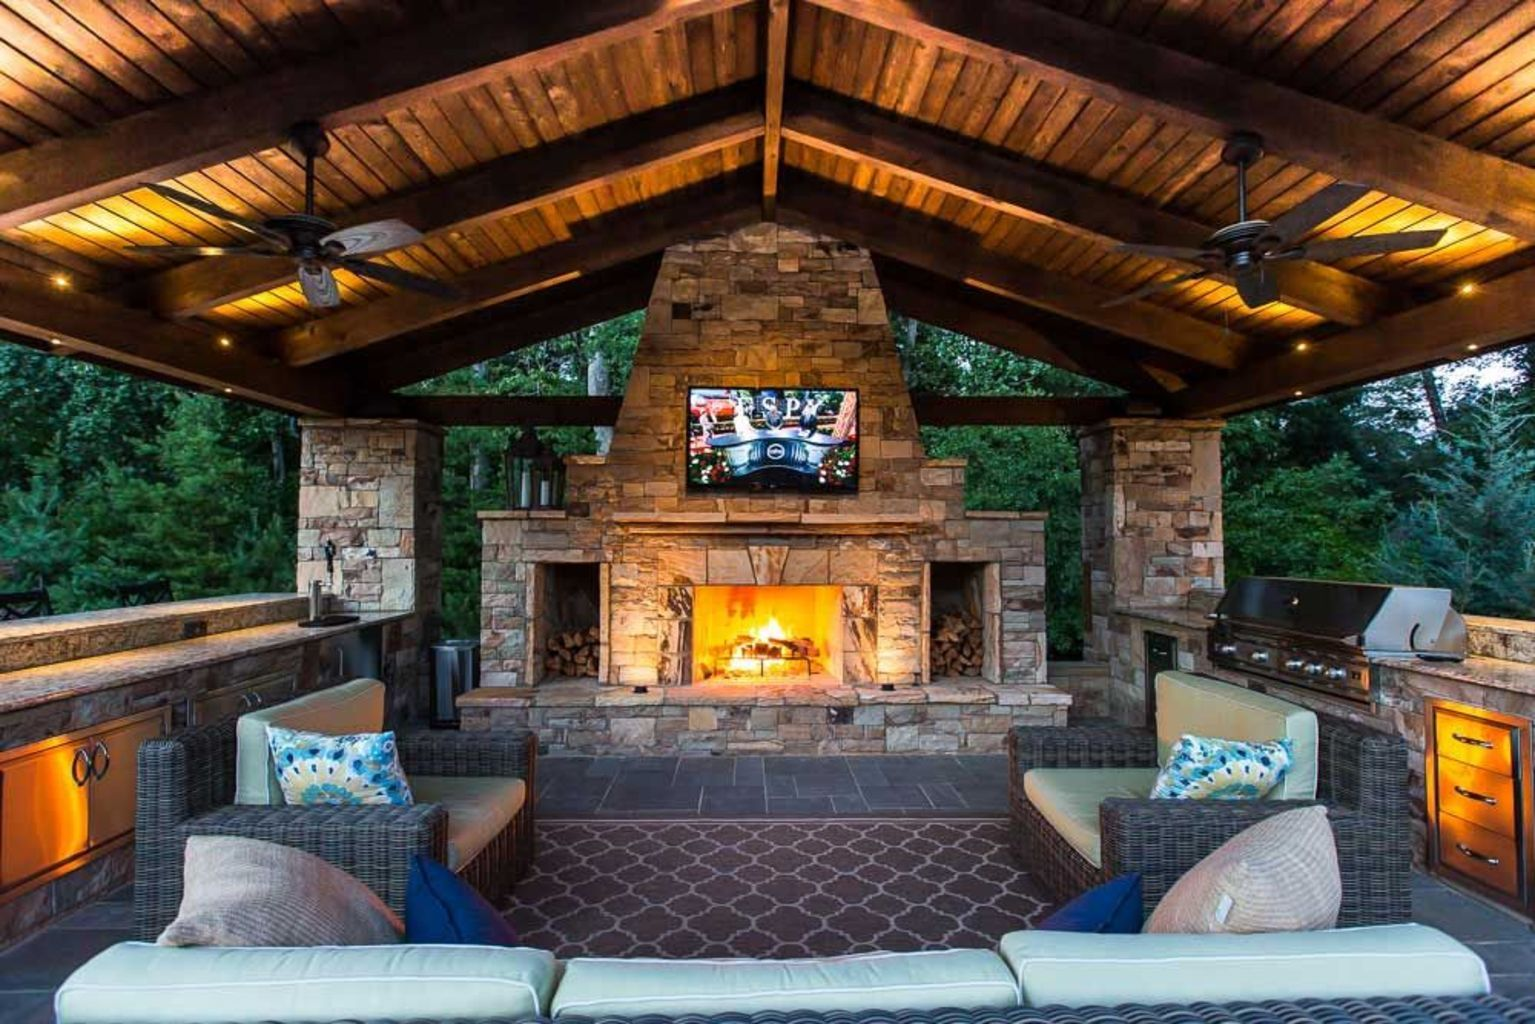 30 back porch designs perfect for everything backyard fireplace outdoor kitchen design on outdoor kitchen gazebo ideas id=86143